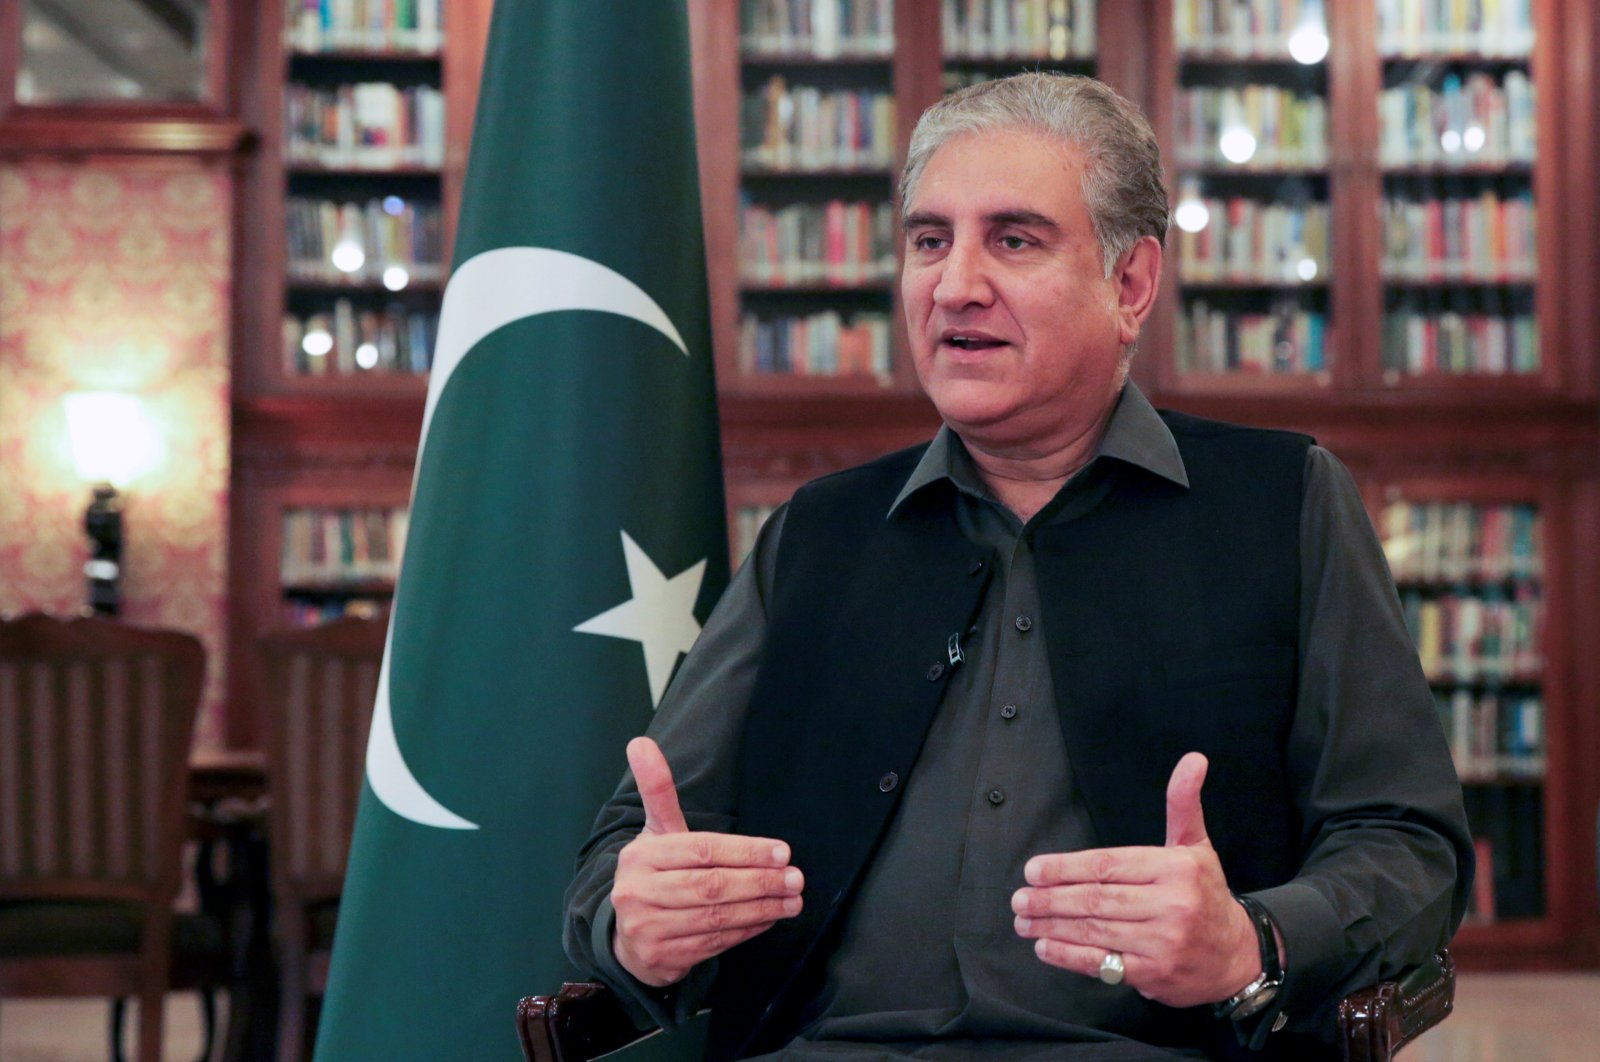 Pakistani Foreign Minister Shah Mehmood Qureshi gestures while speaking during an interview with Reuters at the Ministry of Foreign Affairs in Islamabad, Pakistan March 1, 2020. (Reuters Photo)